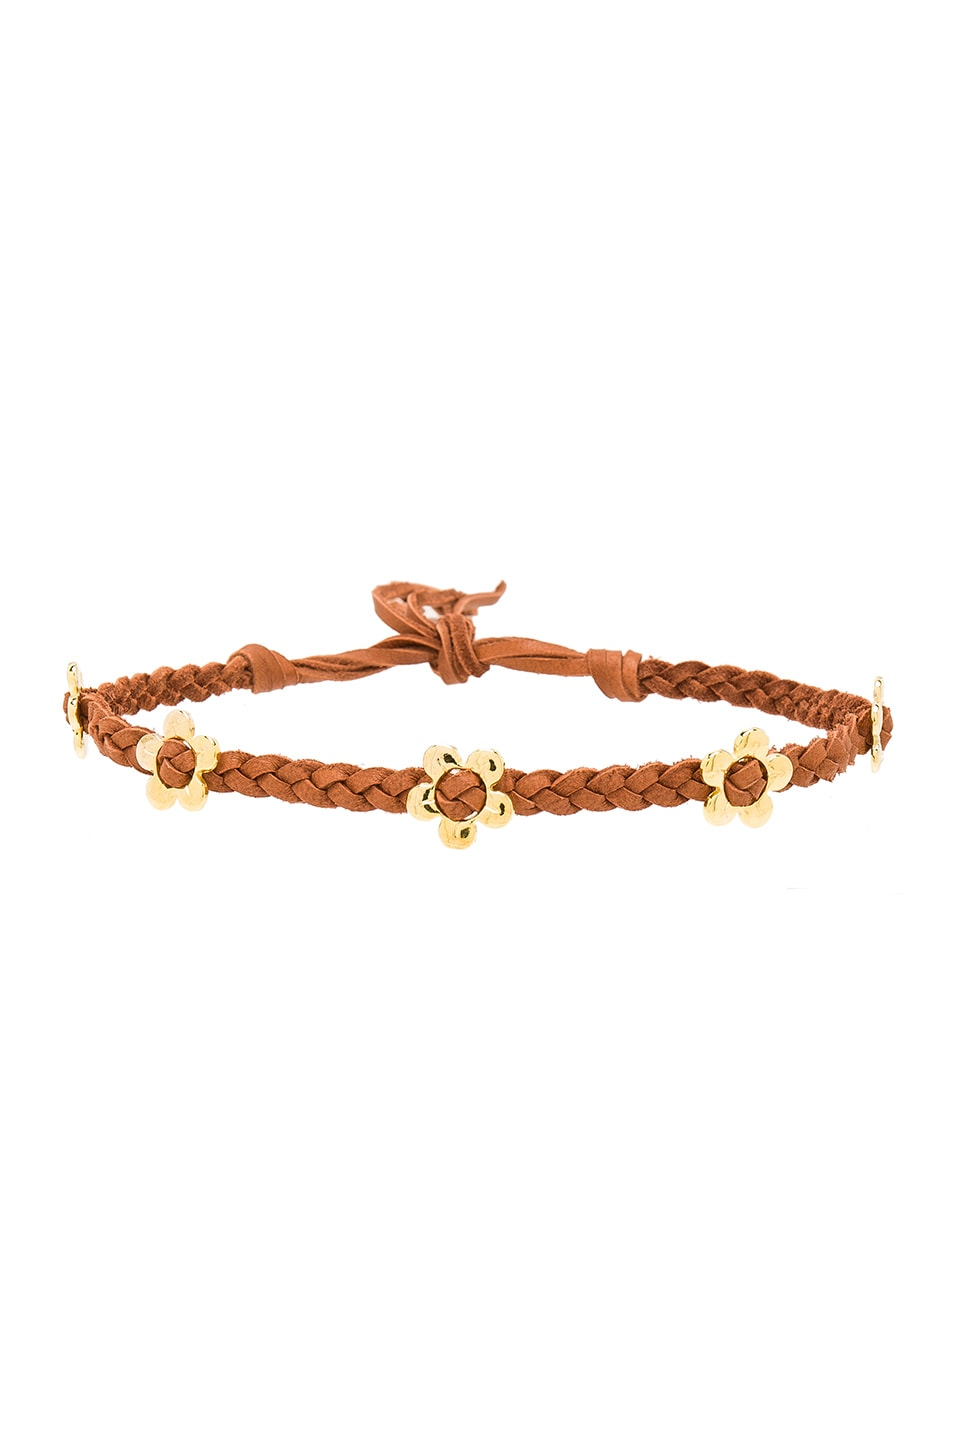 Frasier Sterling Flower Power Choker in Cognac